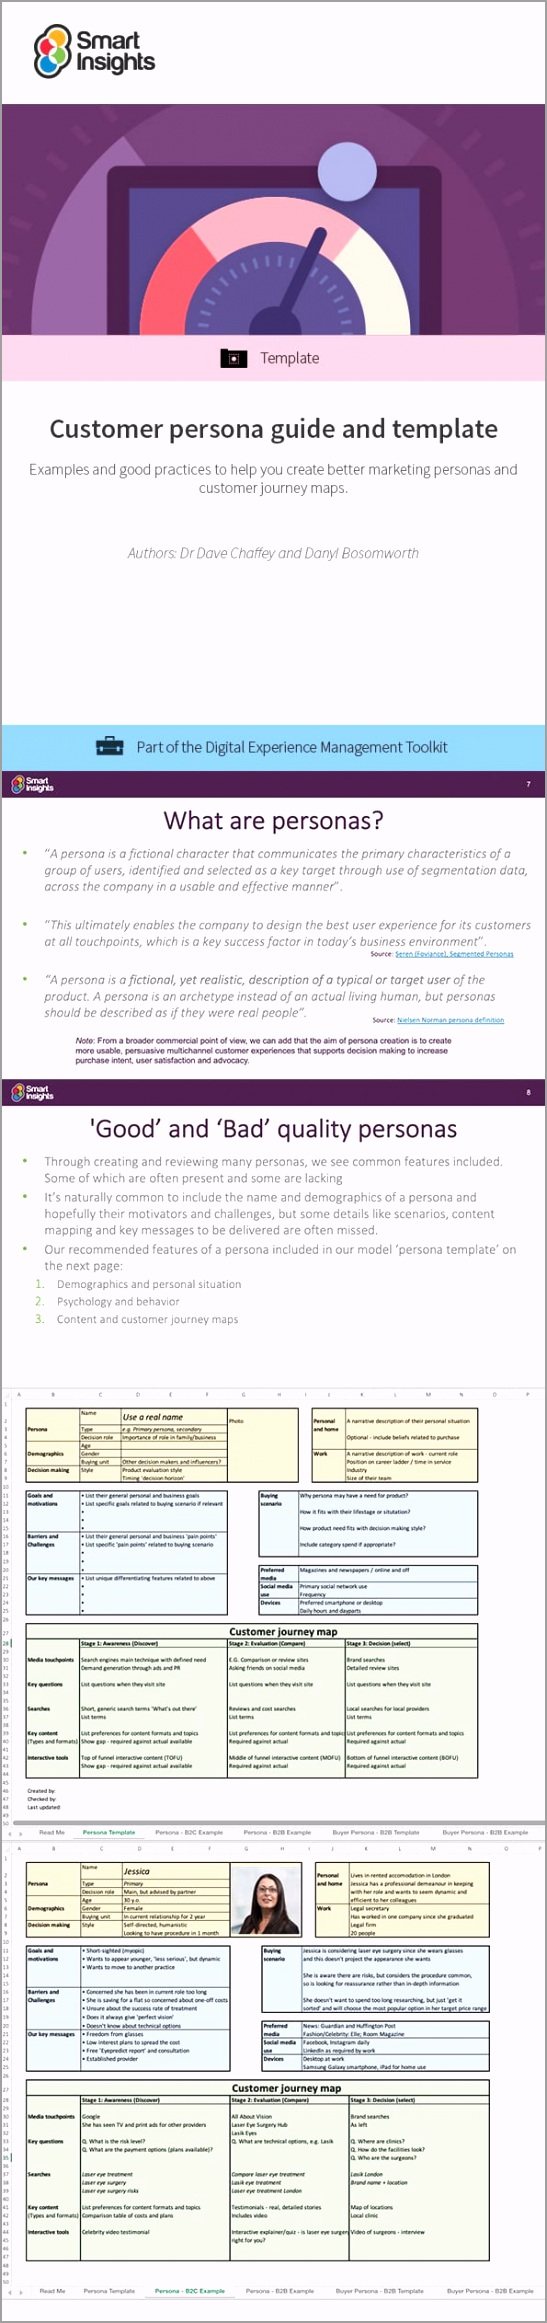 customer persona guide and template look inside aperr